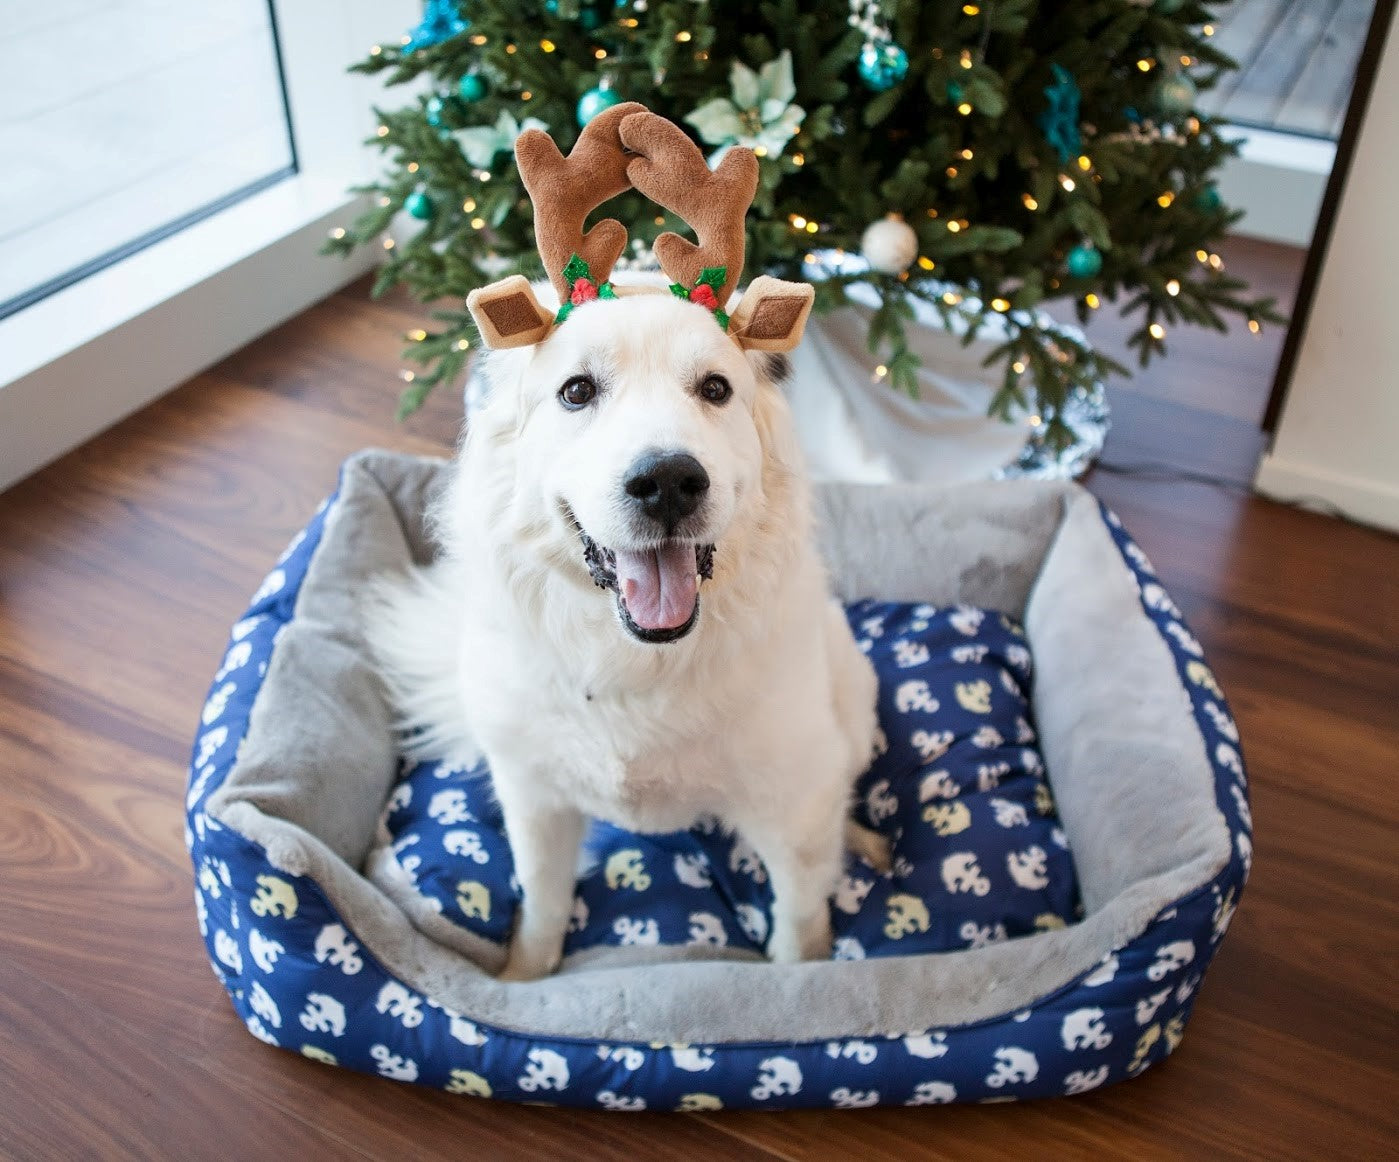 Holiday Pet Hazards: How to Keep Your Pet Safe